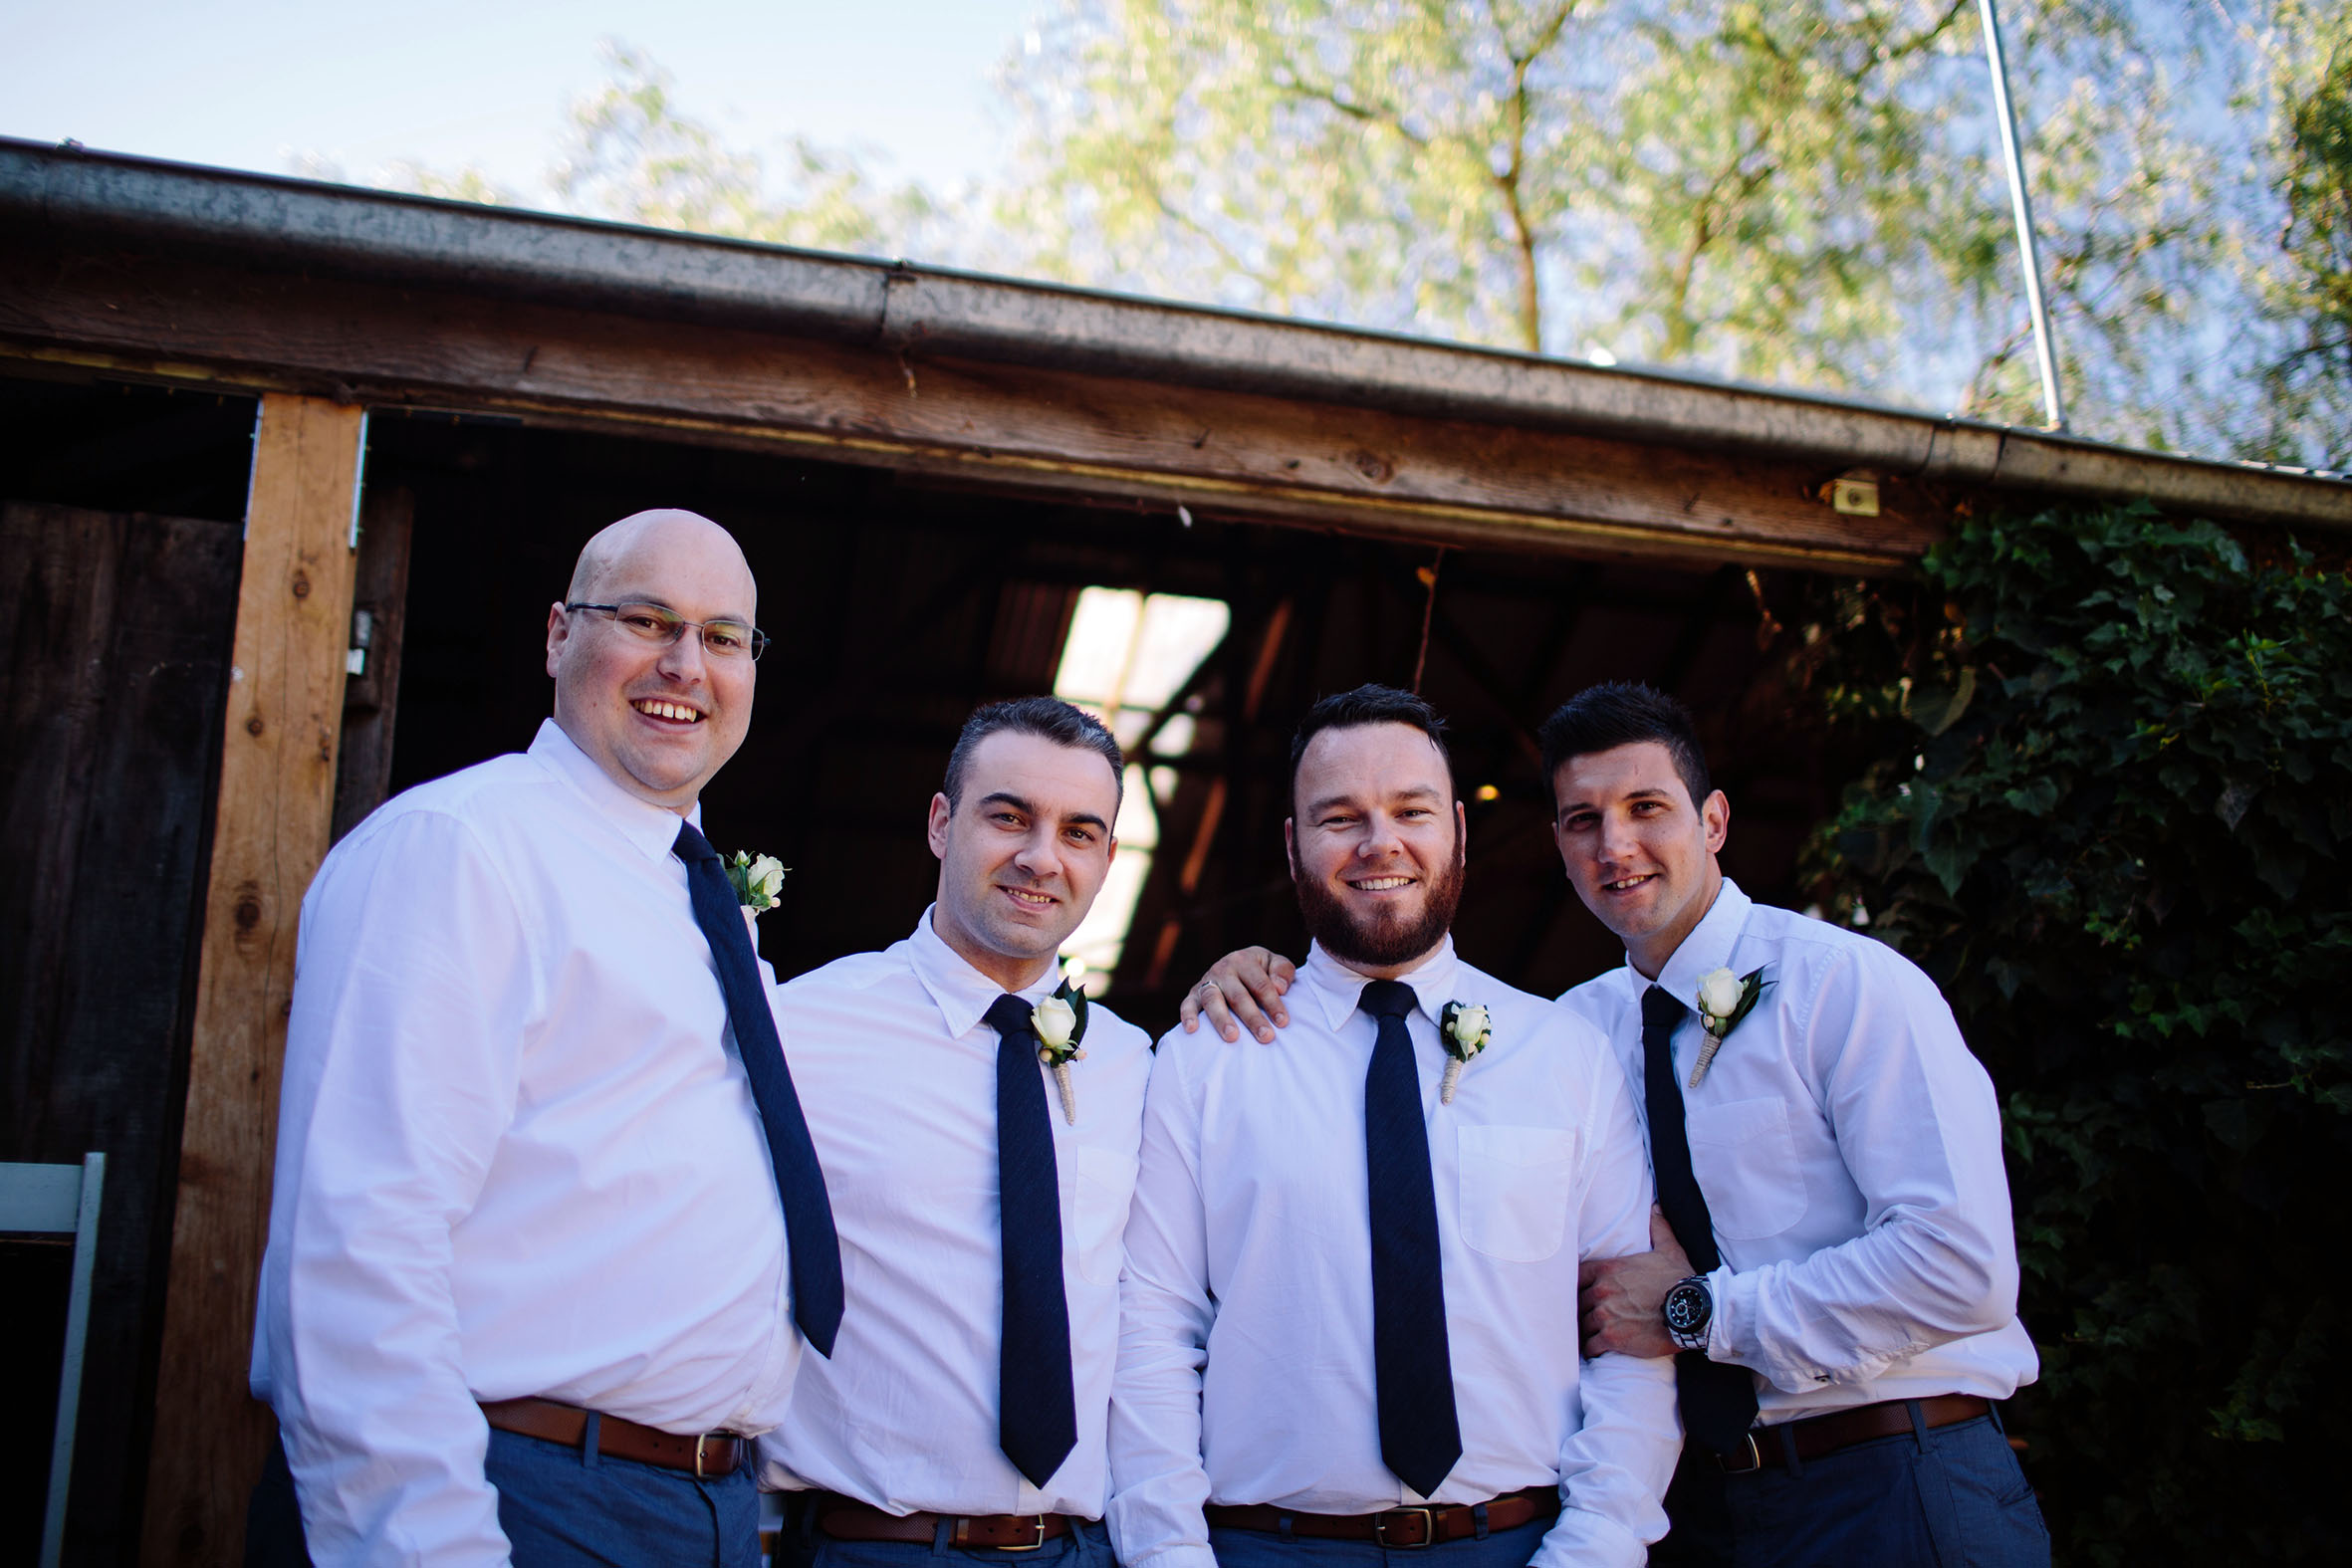 Melbourne wedding groomsmen.jpg